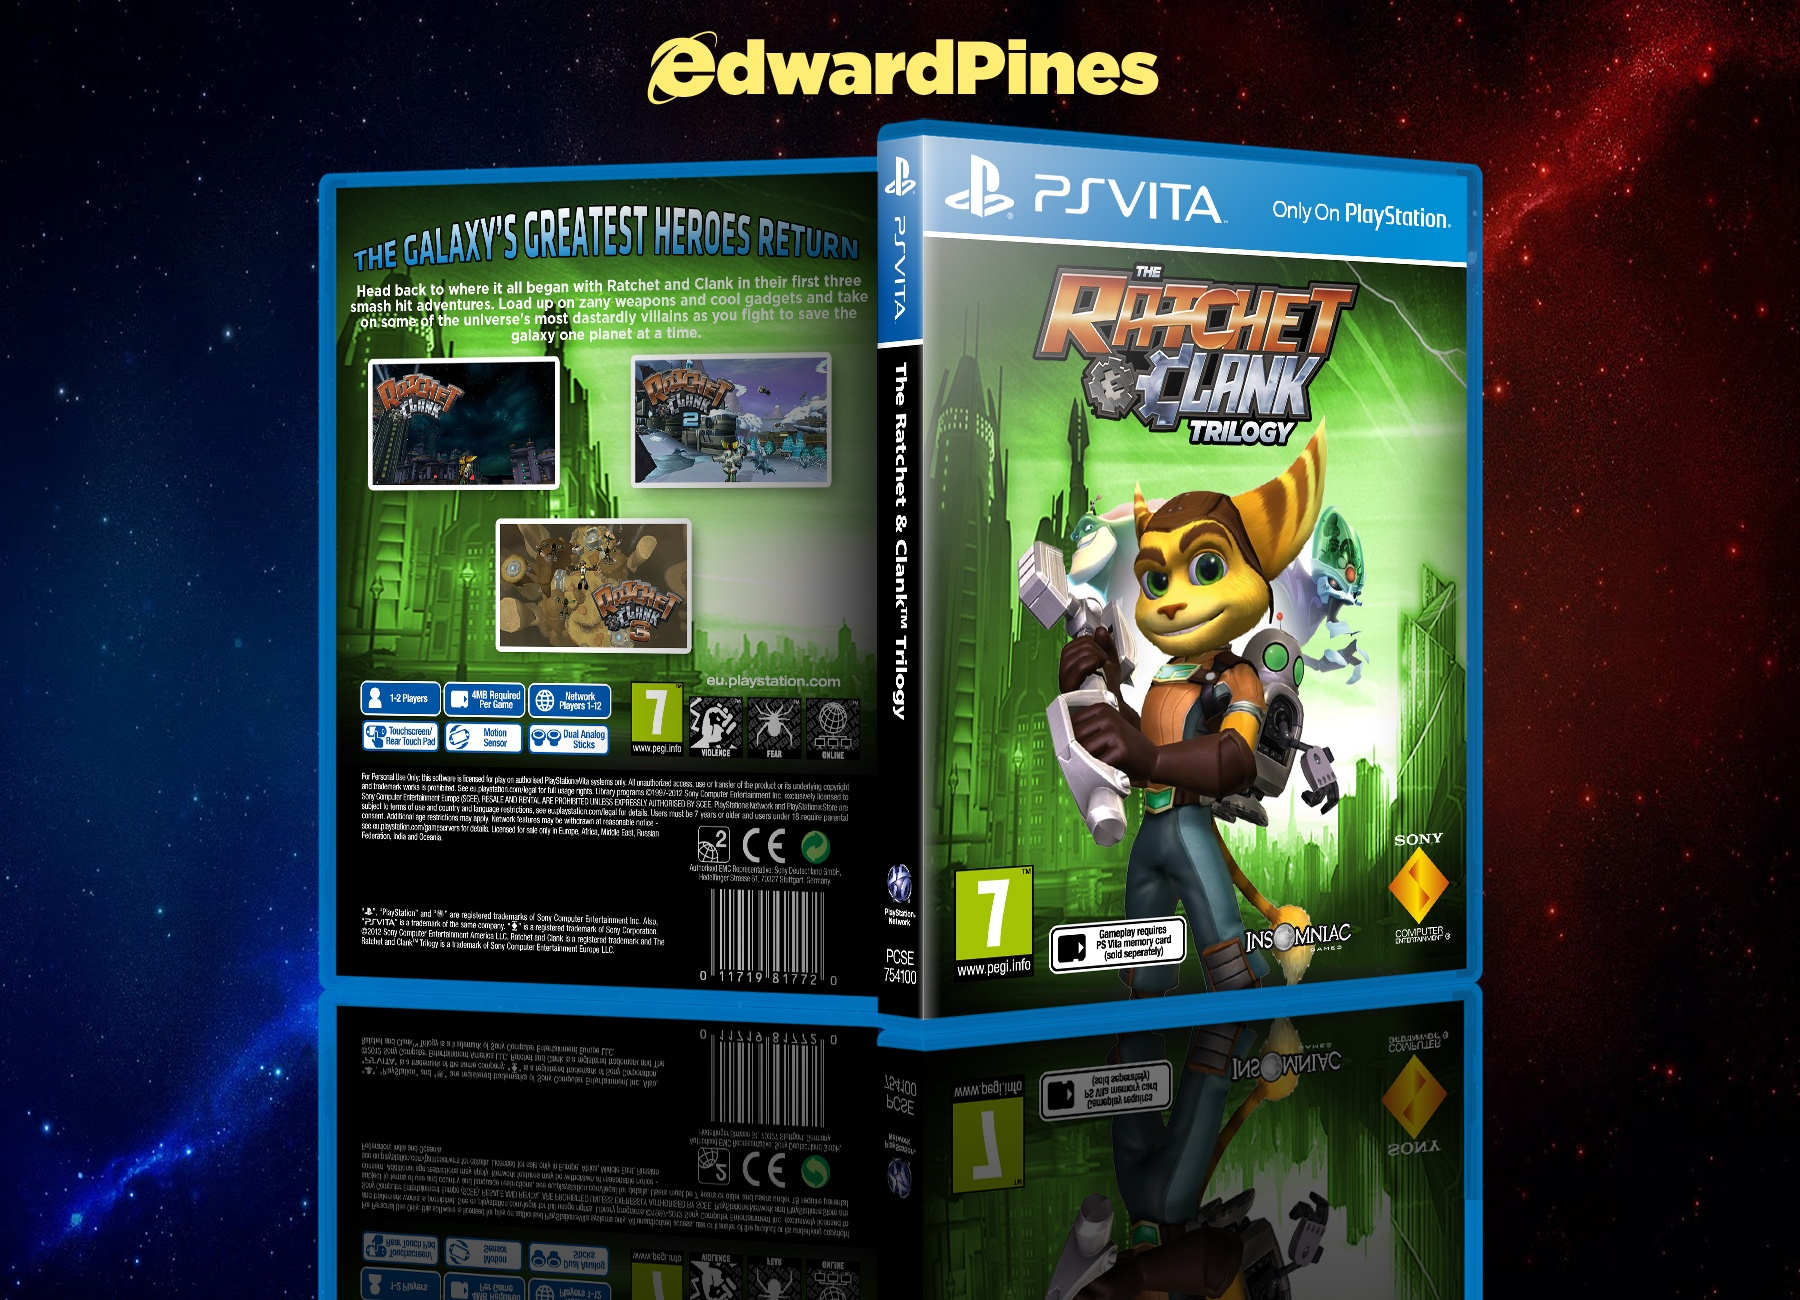 The Ratchet & Clank Trilogy box cover